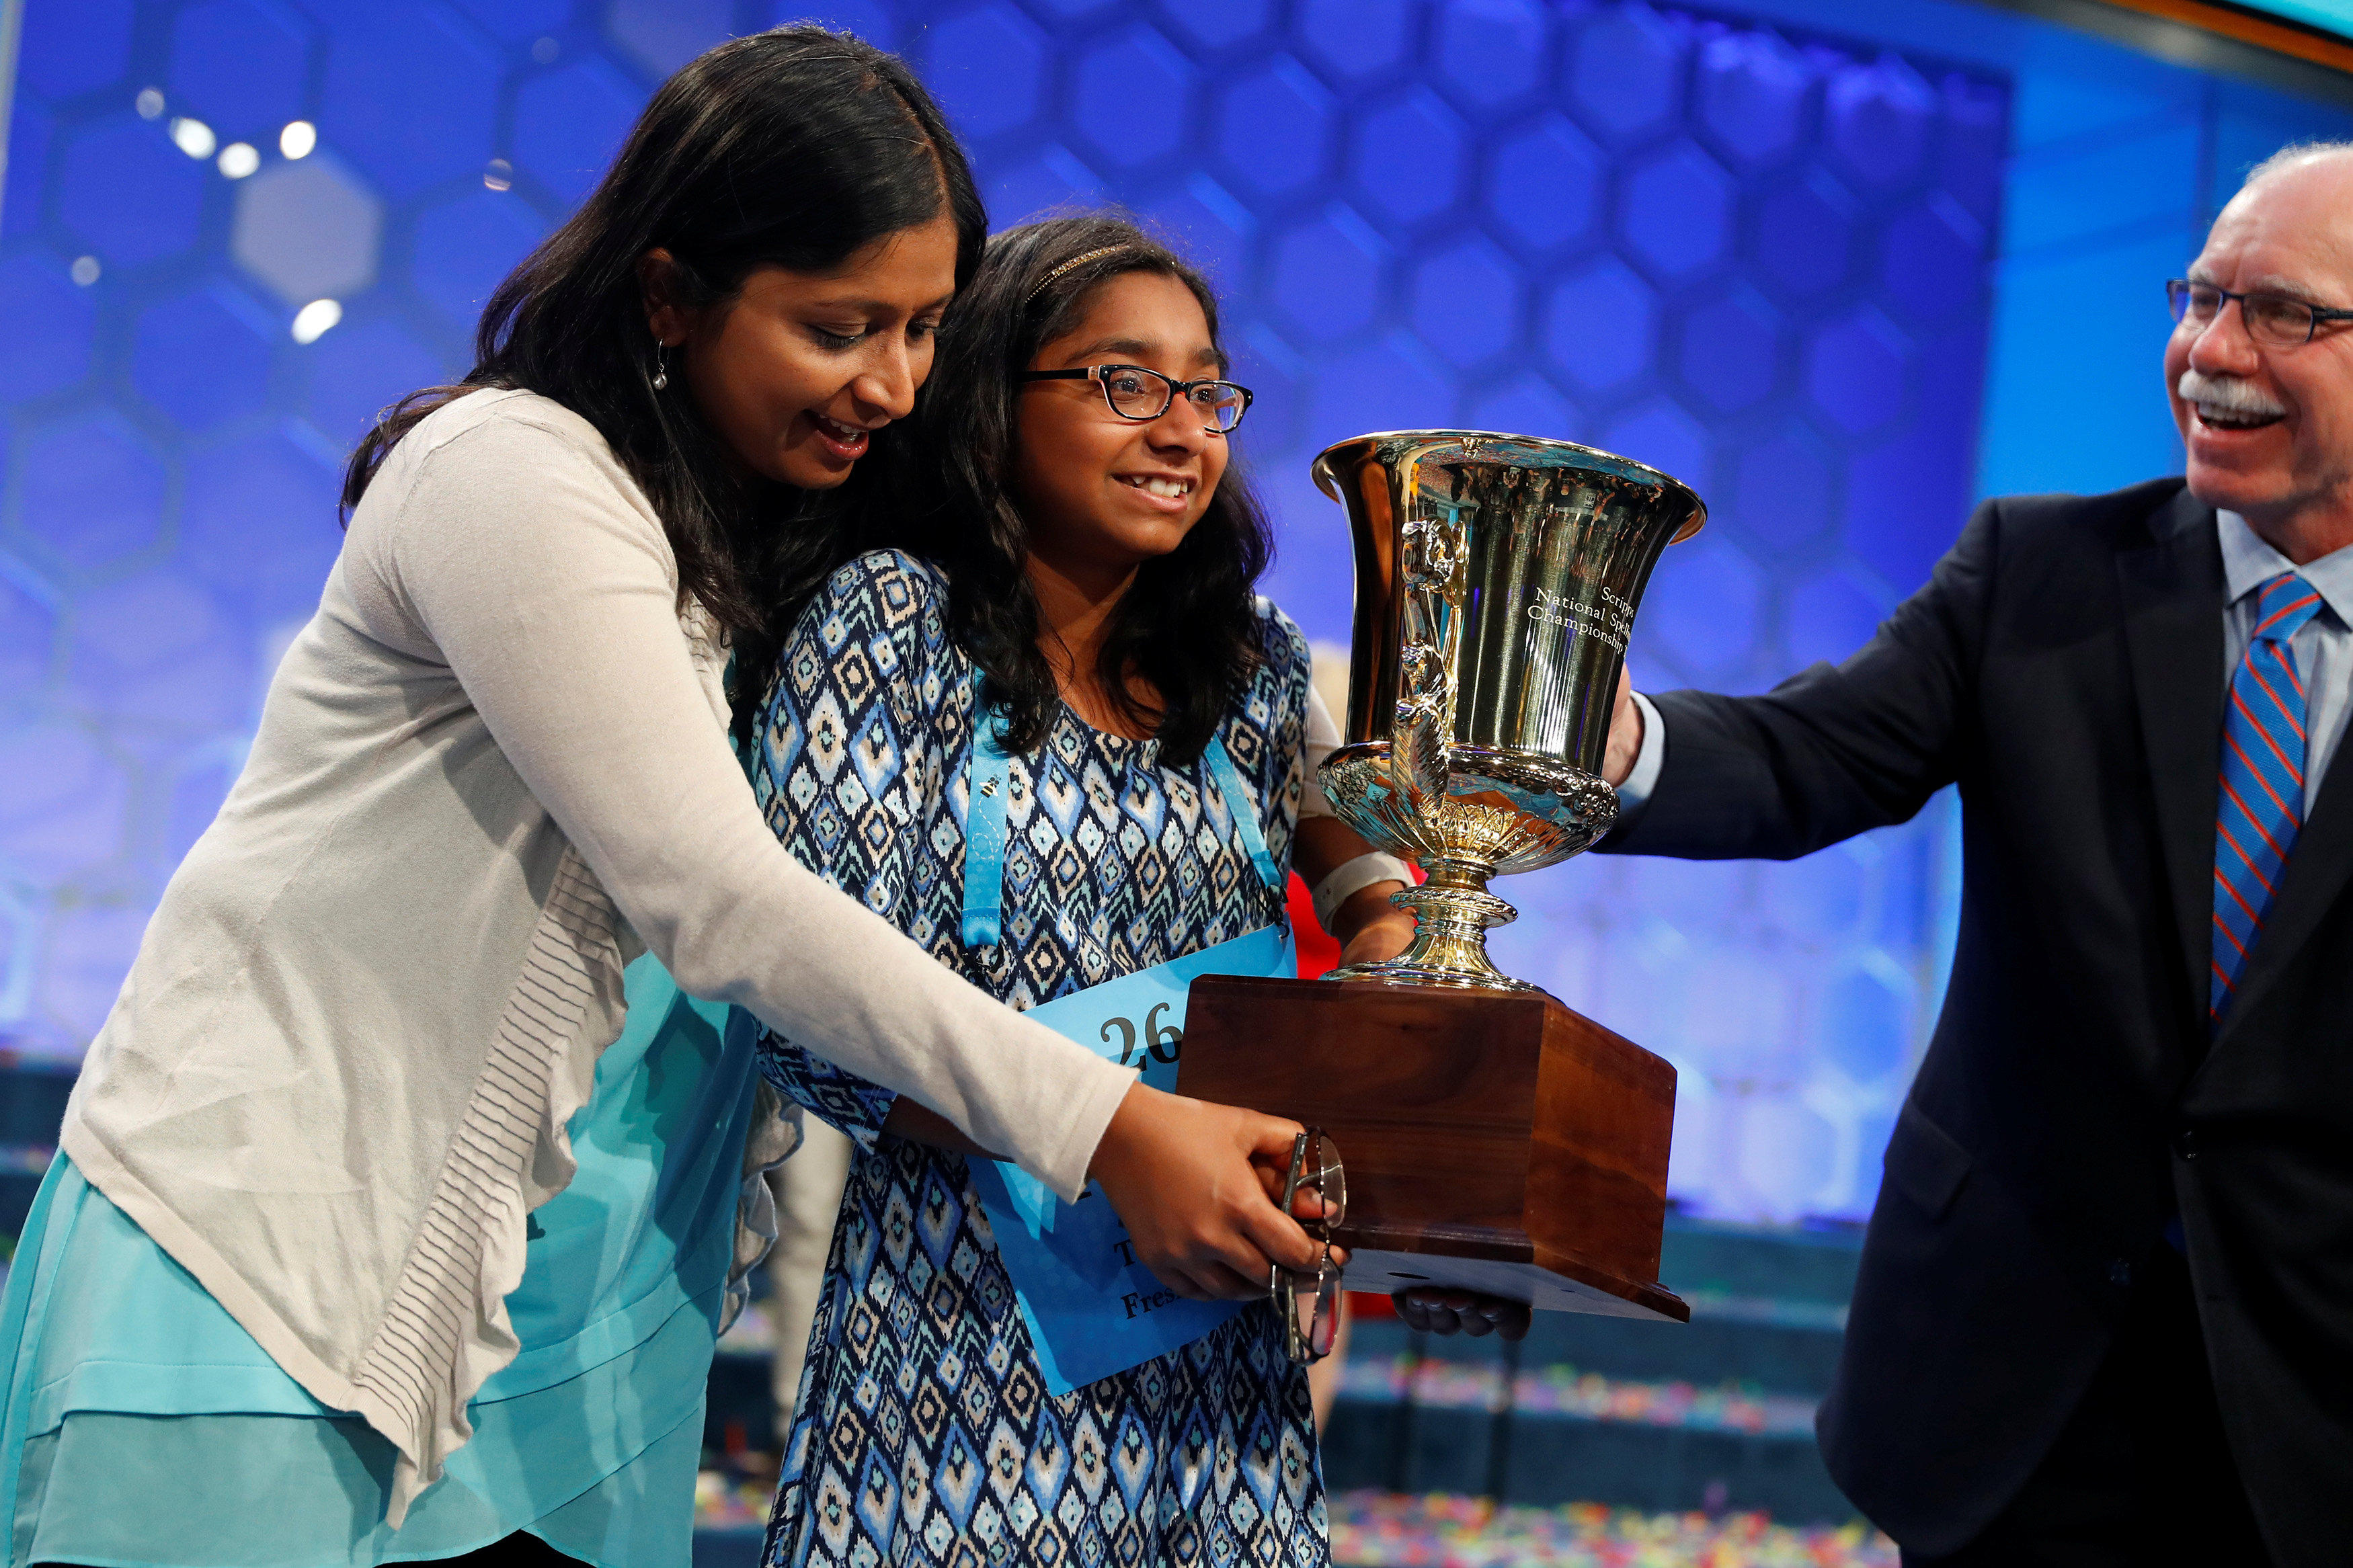 Ananya Vinay, 12, wins Scripps National Spelling Bee ...